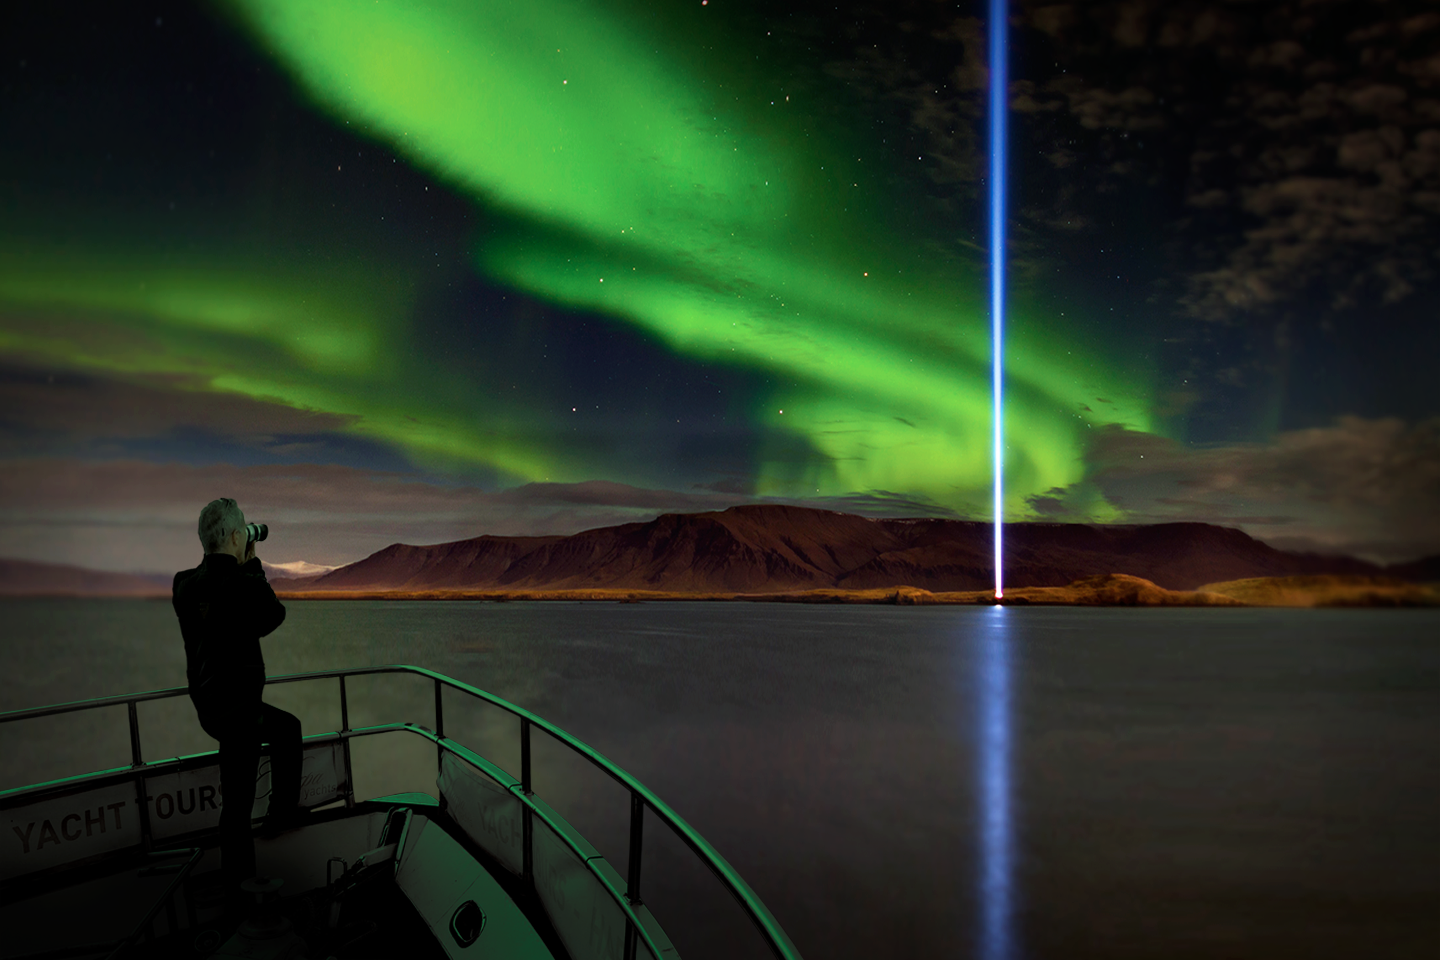 An incredible view of the auroras from the deck of the cruise ship in Iceland.